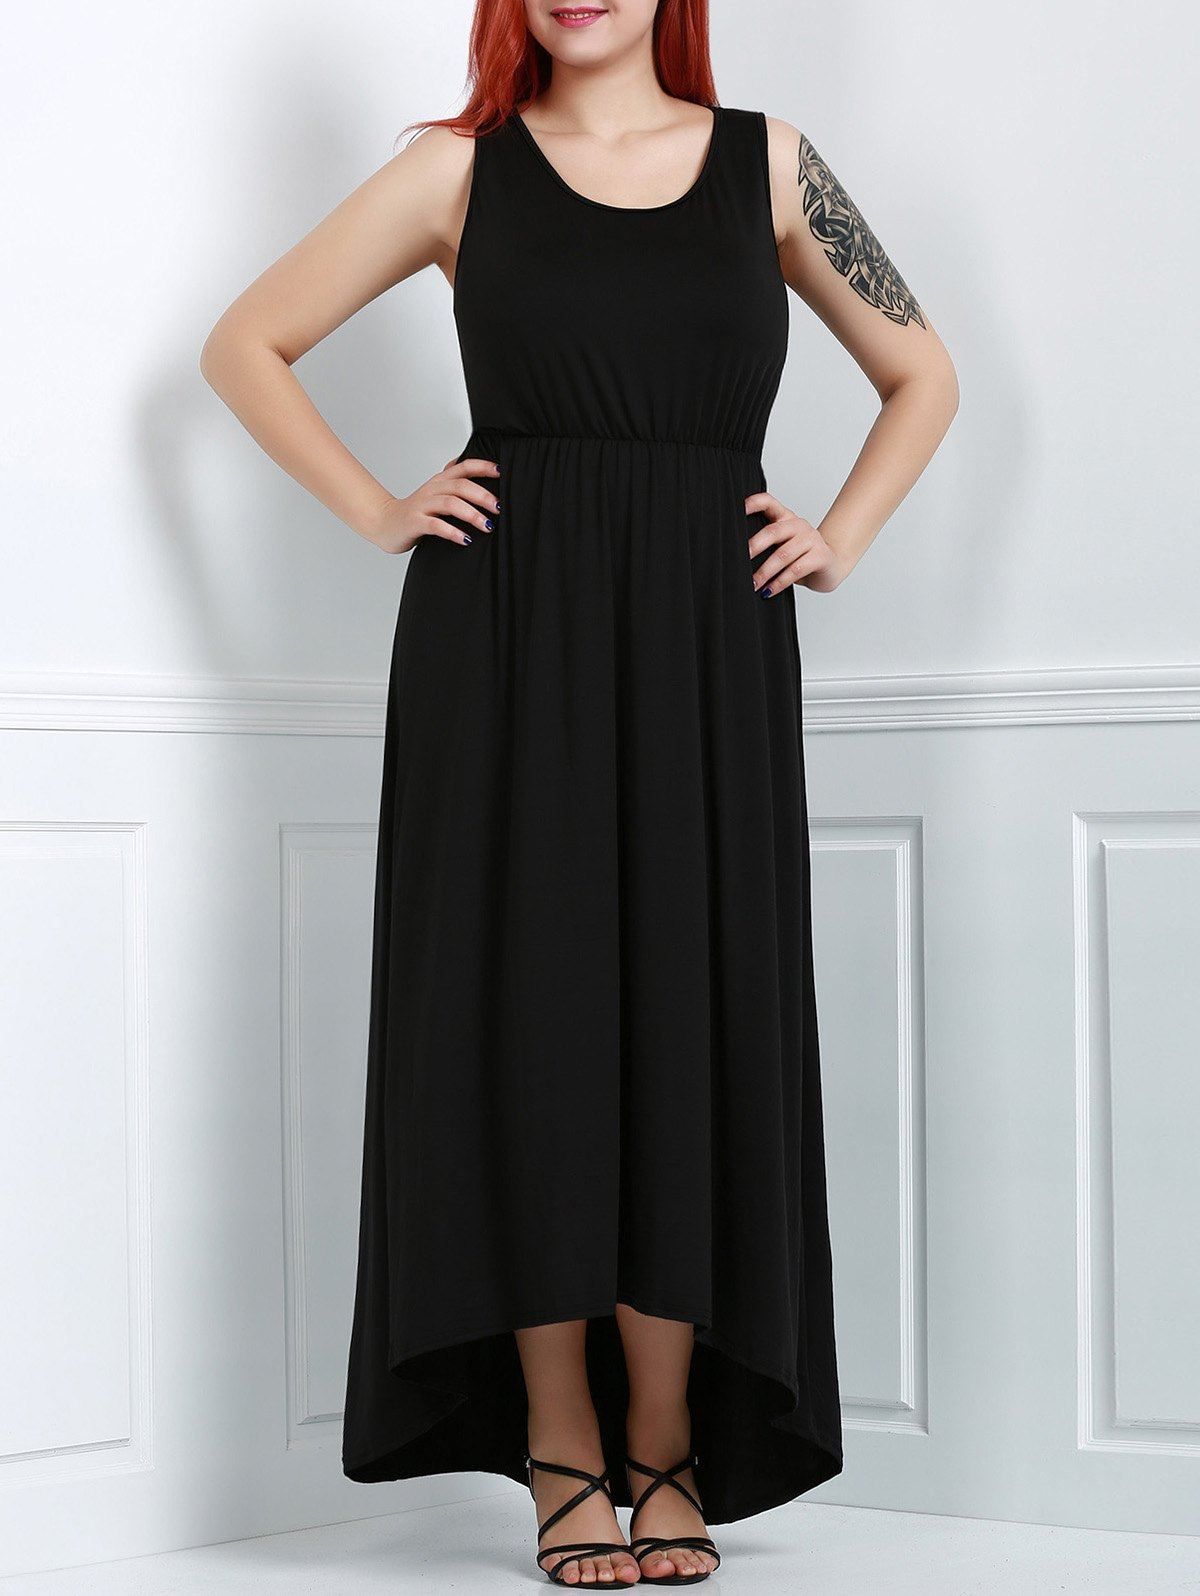 Trendy Black U-Neck Sleeveless High Waist Asymmetric Plus Size Dress For Women - BLACK 3XL